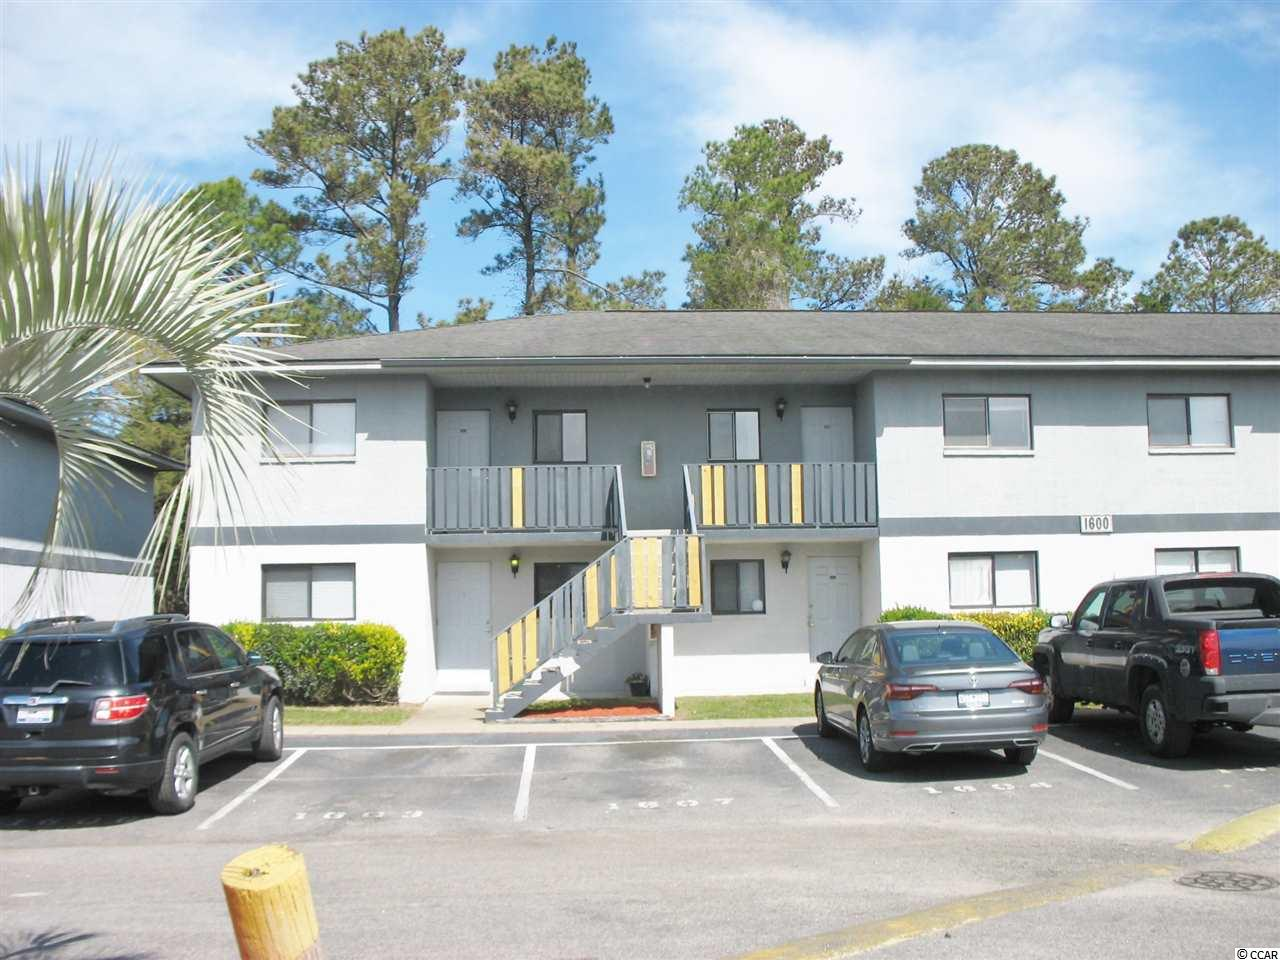 Cute Ground Floor, 2 Bedroom, 2 Bath Open concept Condo with Screened porch and community pool in Surfside Beach! Living room and bedrooms have nice/ high end ceiling fans with lights. Tile and Carpet flooring. New Refrigerator and Microwave installed in 2018. Master Bedroom has quiet view, walk-in closet and Master Bath with Low Threshold Shower. This condo in Tradewinds I is conveniently located on west side of Business Hwy 17 close to shopping, restaurants and the beach. Would be a great Primary home, 2nd Home or Rental Investment property. Don't miss it... these go fast!